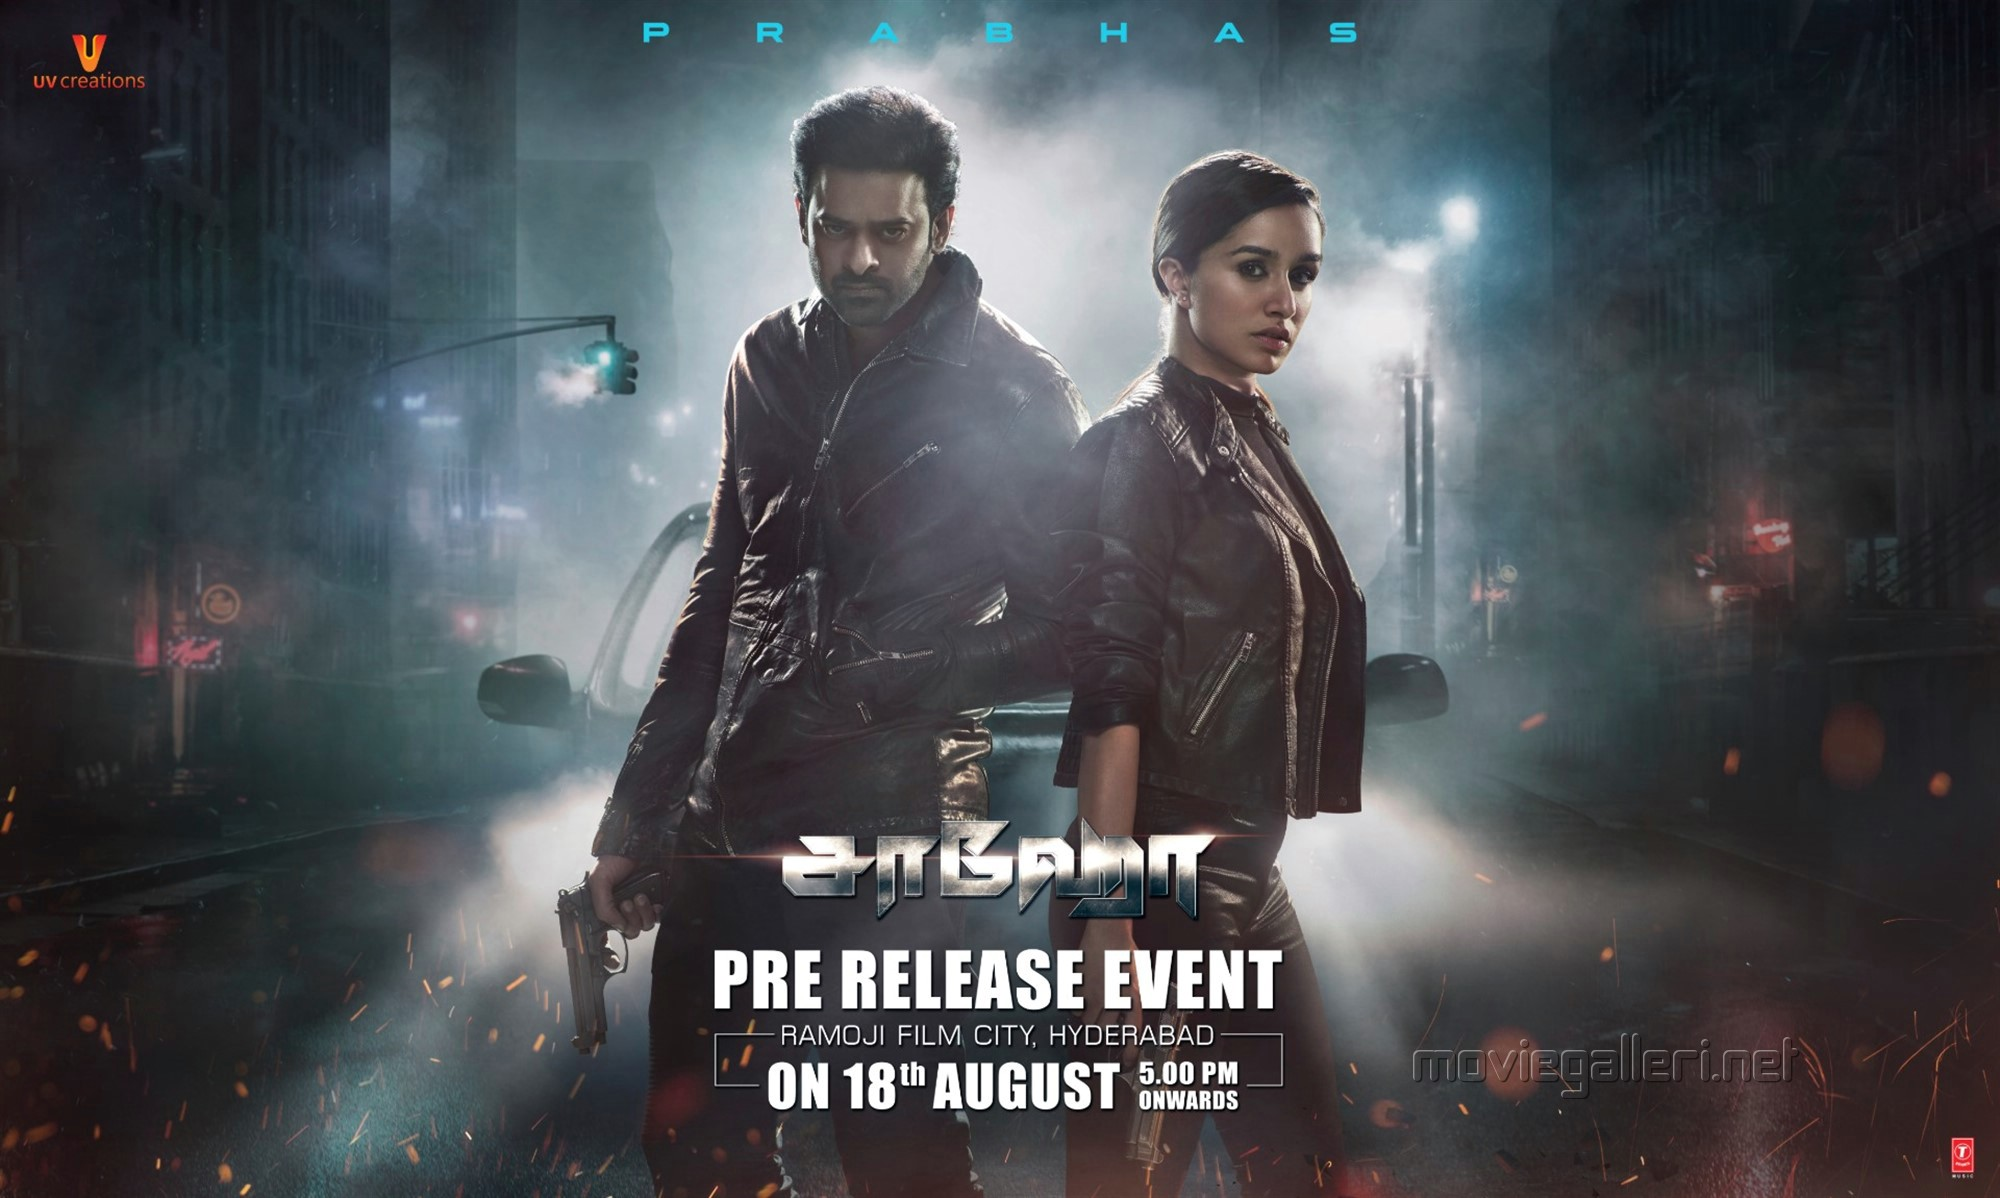 Prabhas Shraddha Kapoor Saaho Pre Release Event on August 18th Wallpapers HD